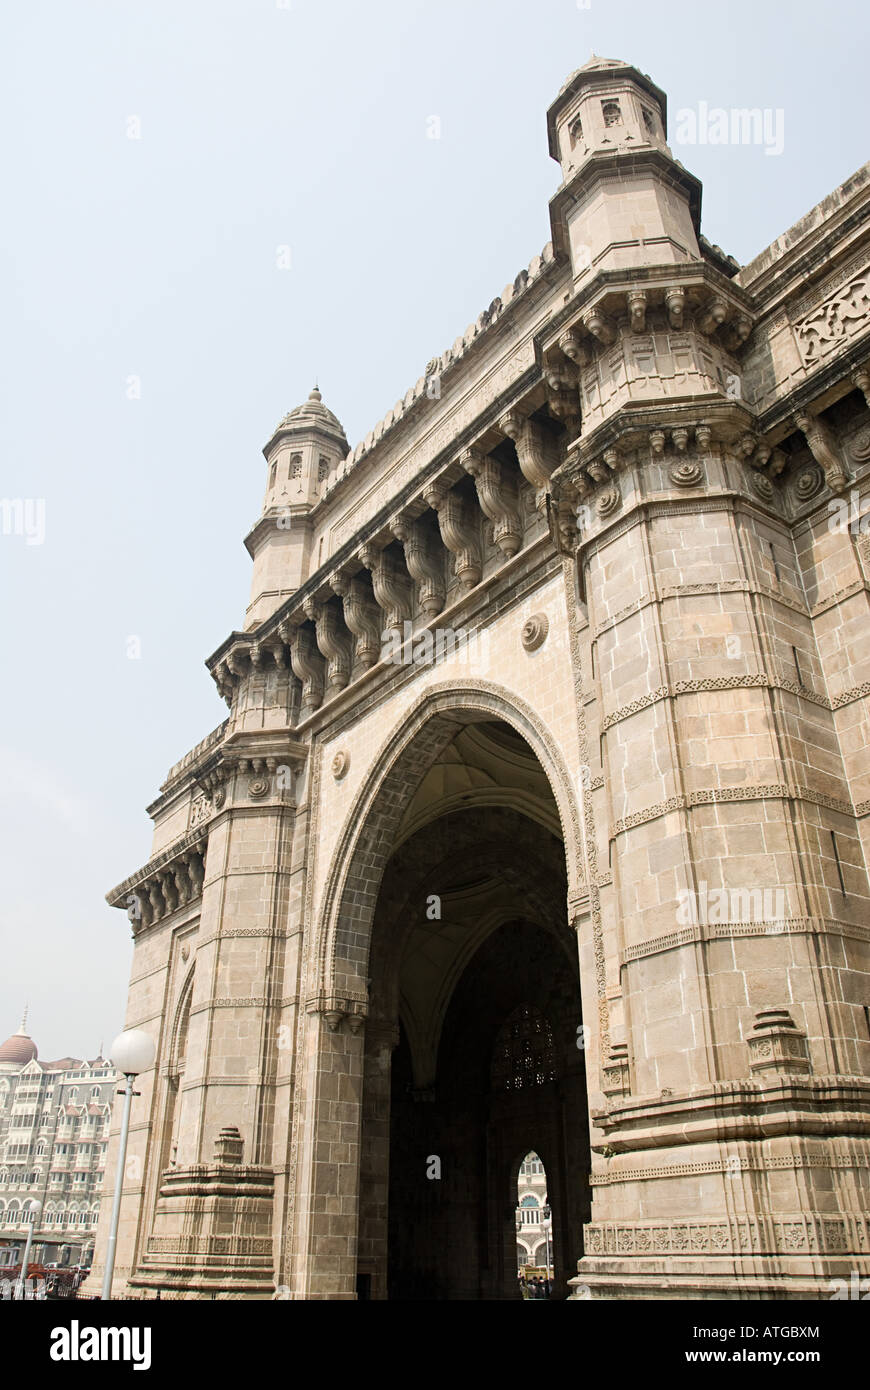 Colonial archway in mumbai - Stock Image